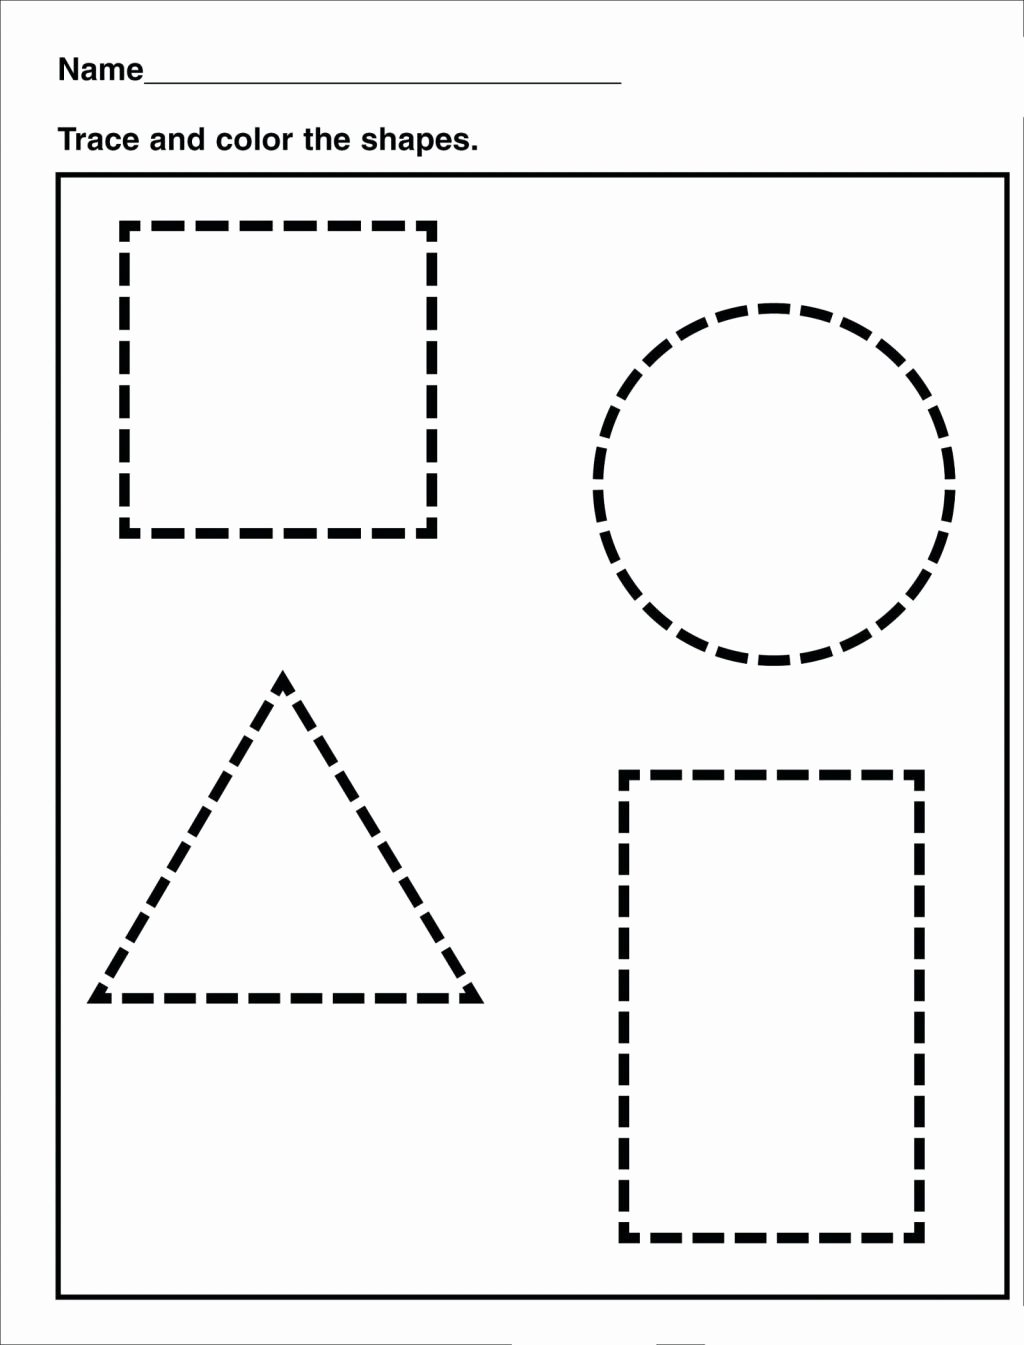 Traceable Shapes Worksheets for Preschoolers Free Worksheet Tracing Shapes Worksheetsor Preschoolers